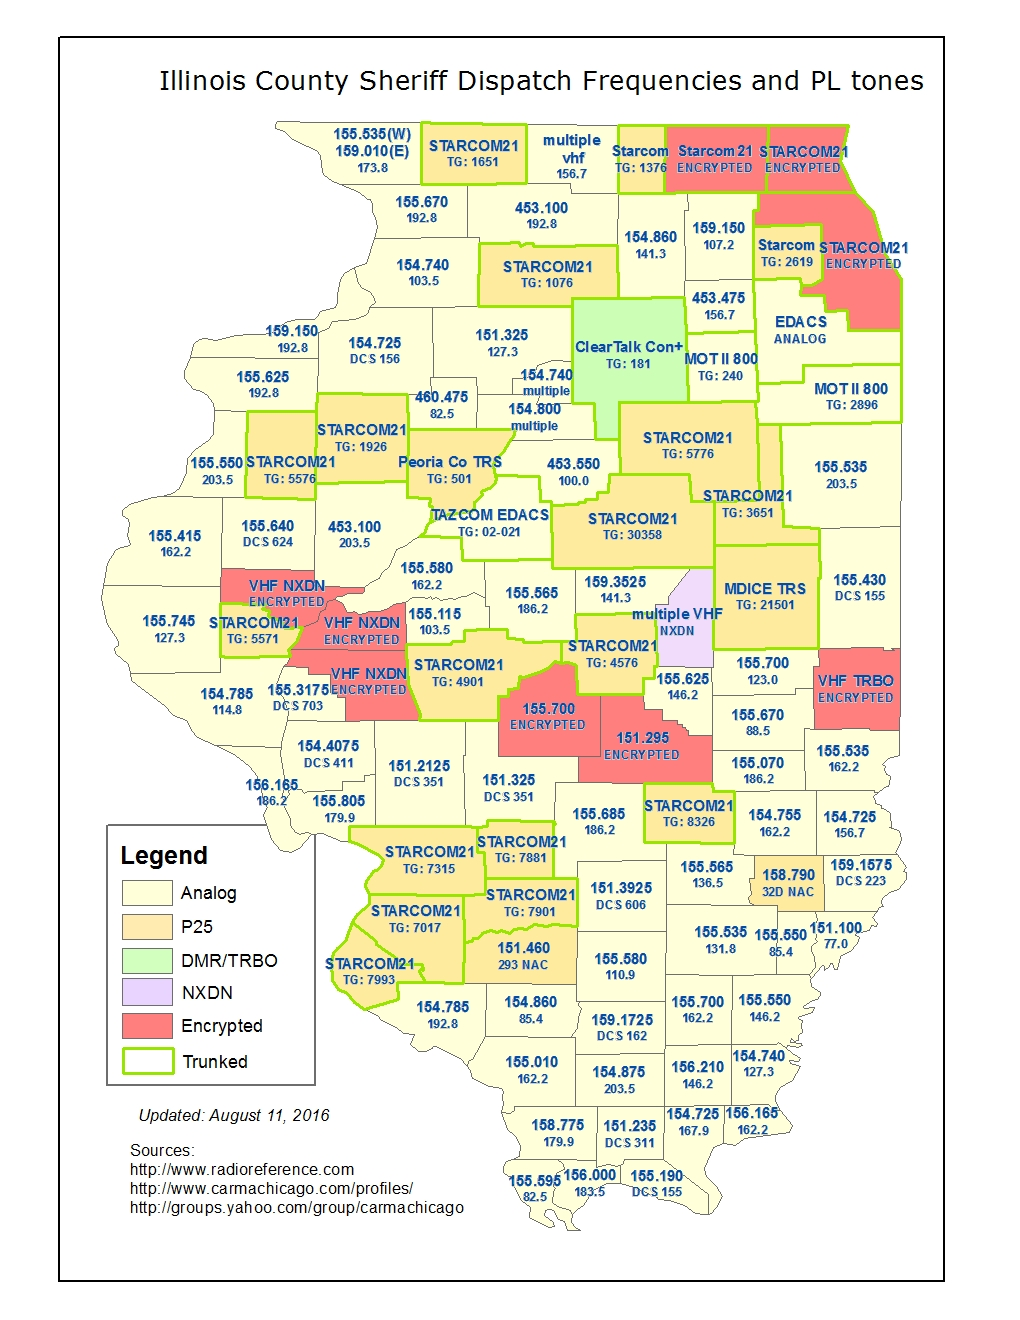 FileIL County Sheriff Dispatch Frequencies Mapjpg The - Illinois county map